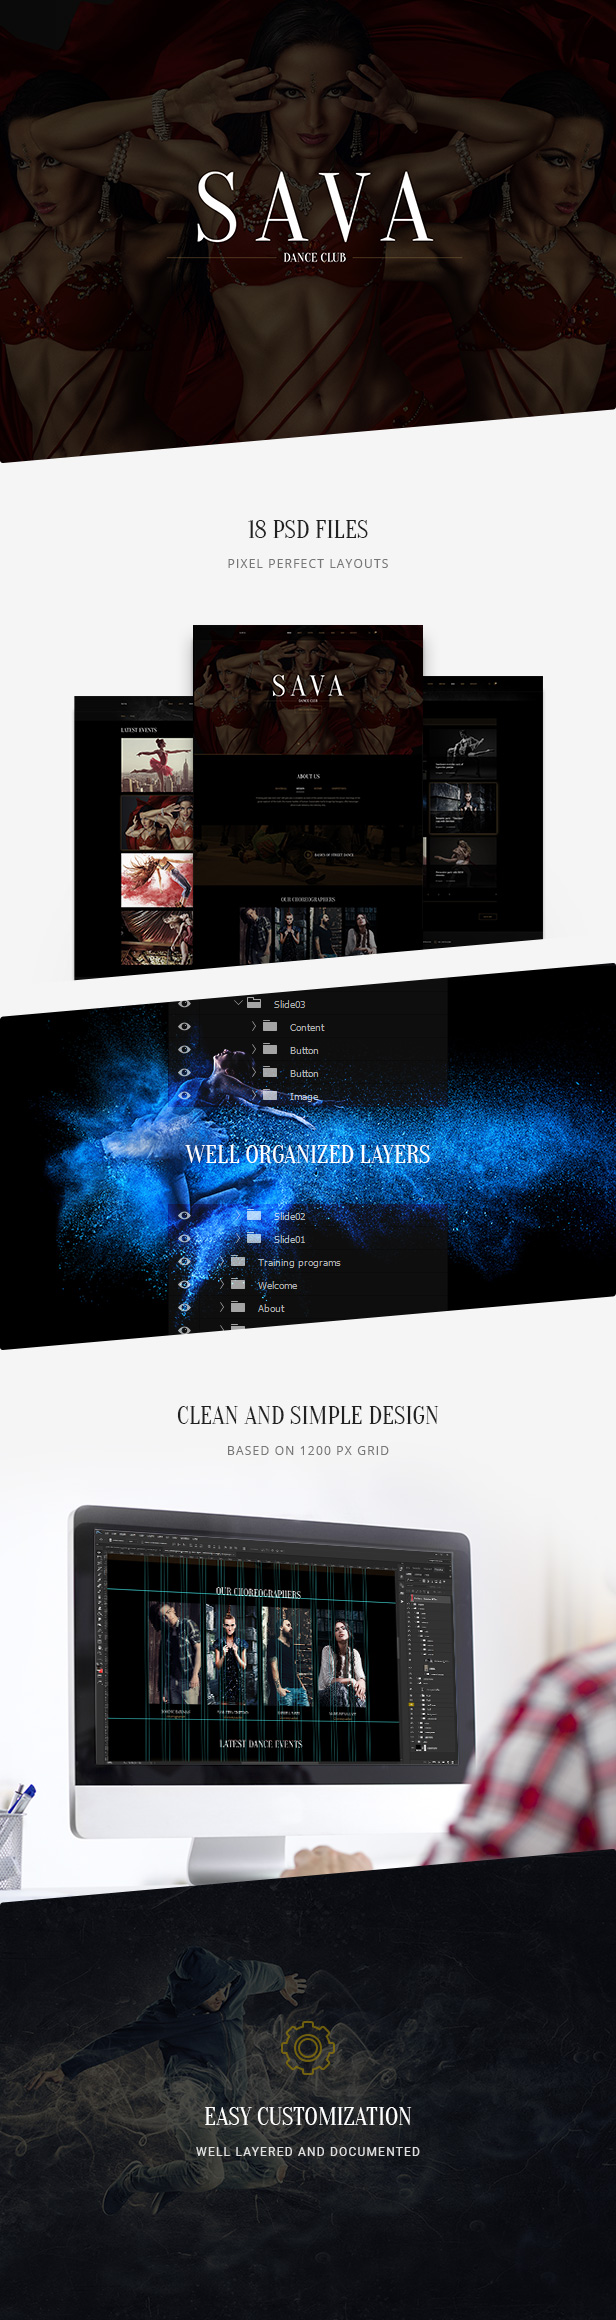 Sava — Dance school | Dance club PSD Template - 1